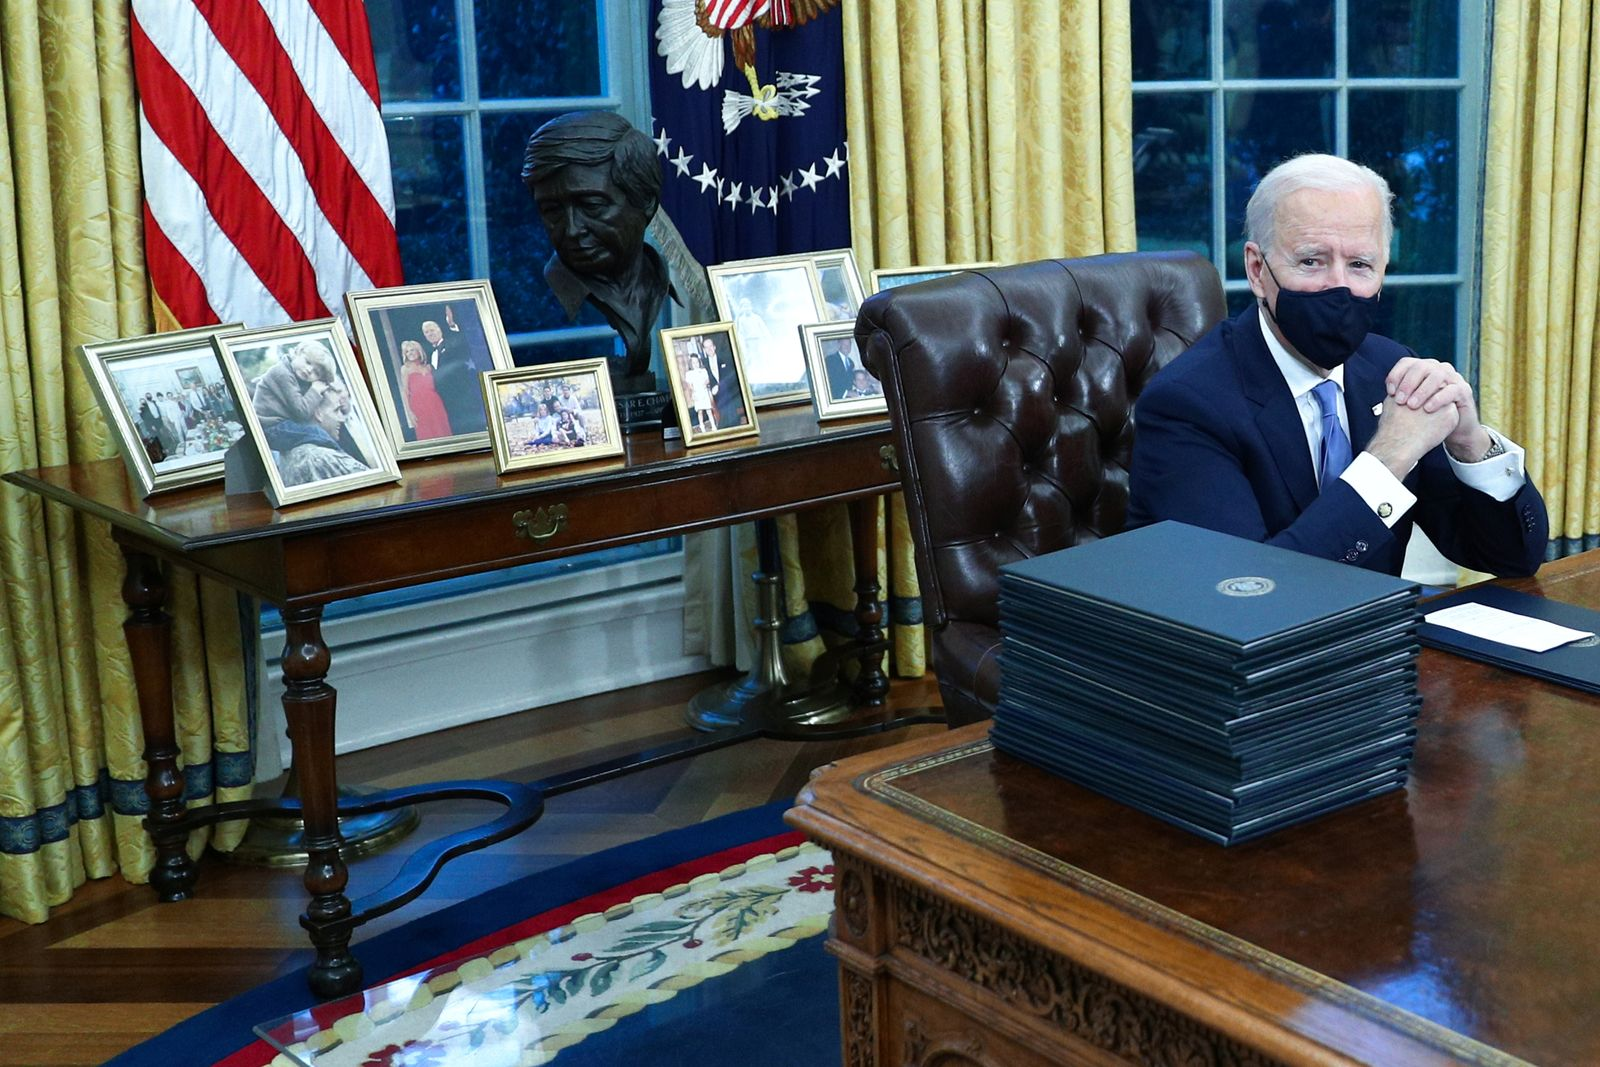 President Biden signs multiple executive orders inside the Oval Office in Washington